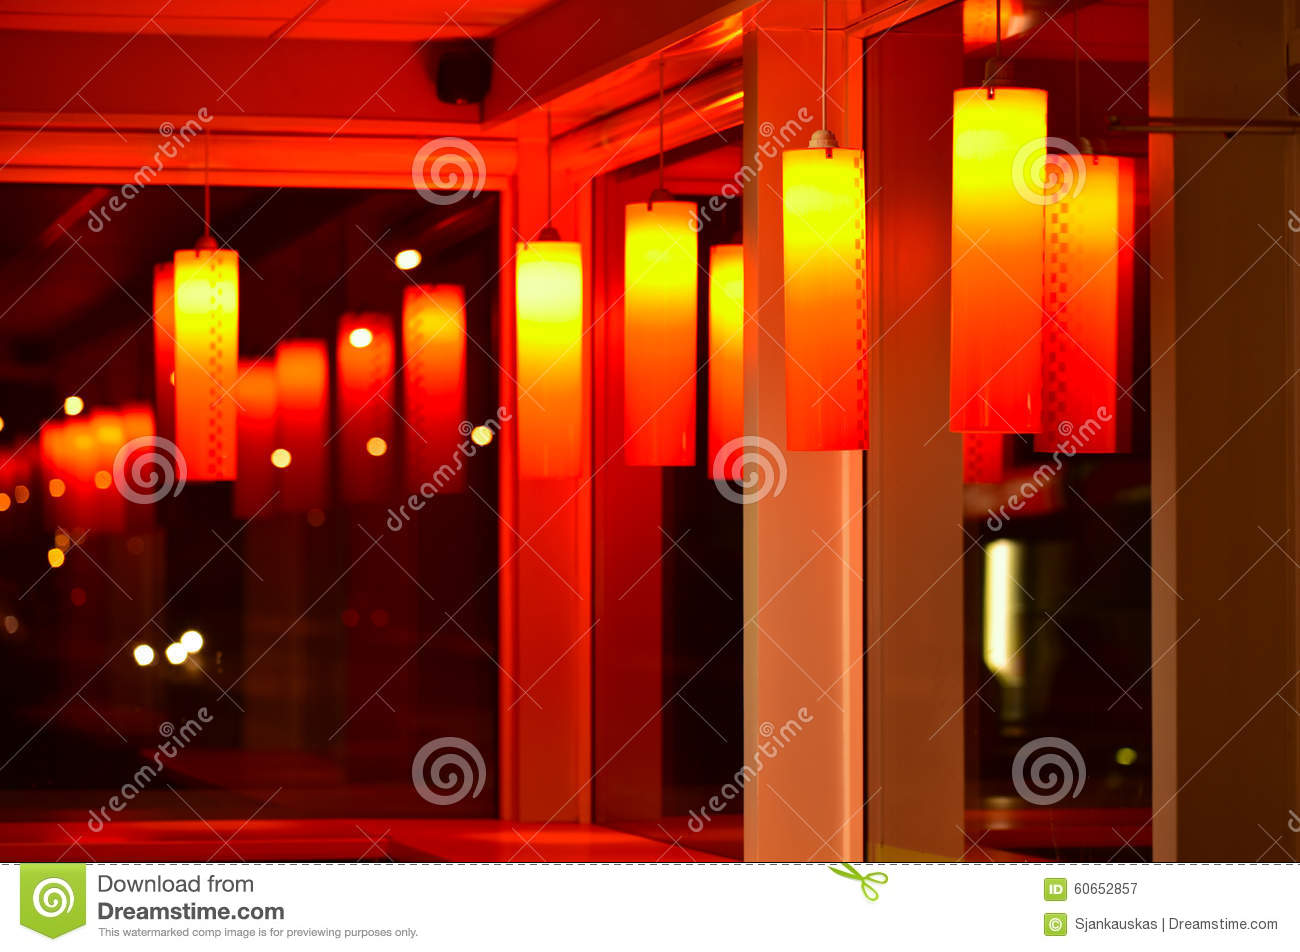 red cafe interior night scene stock photo - image: 60652857